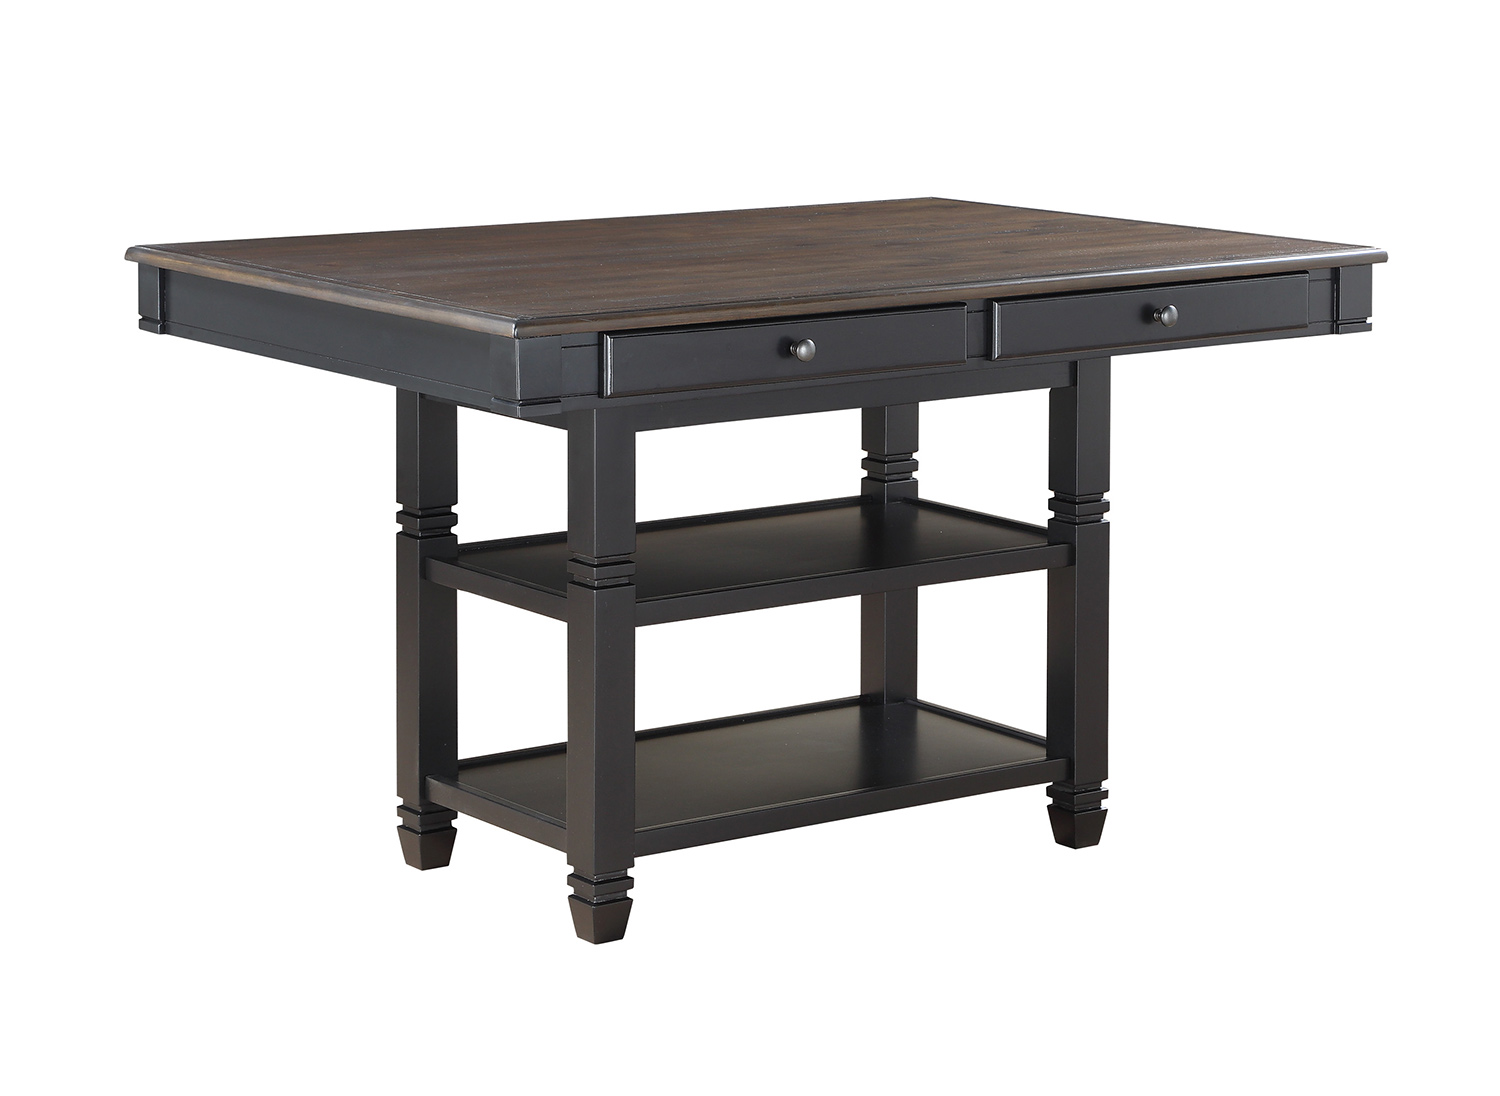 Homelegance Baywater Counter Height Dining Table - Black -Natural